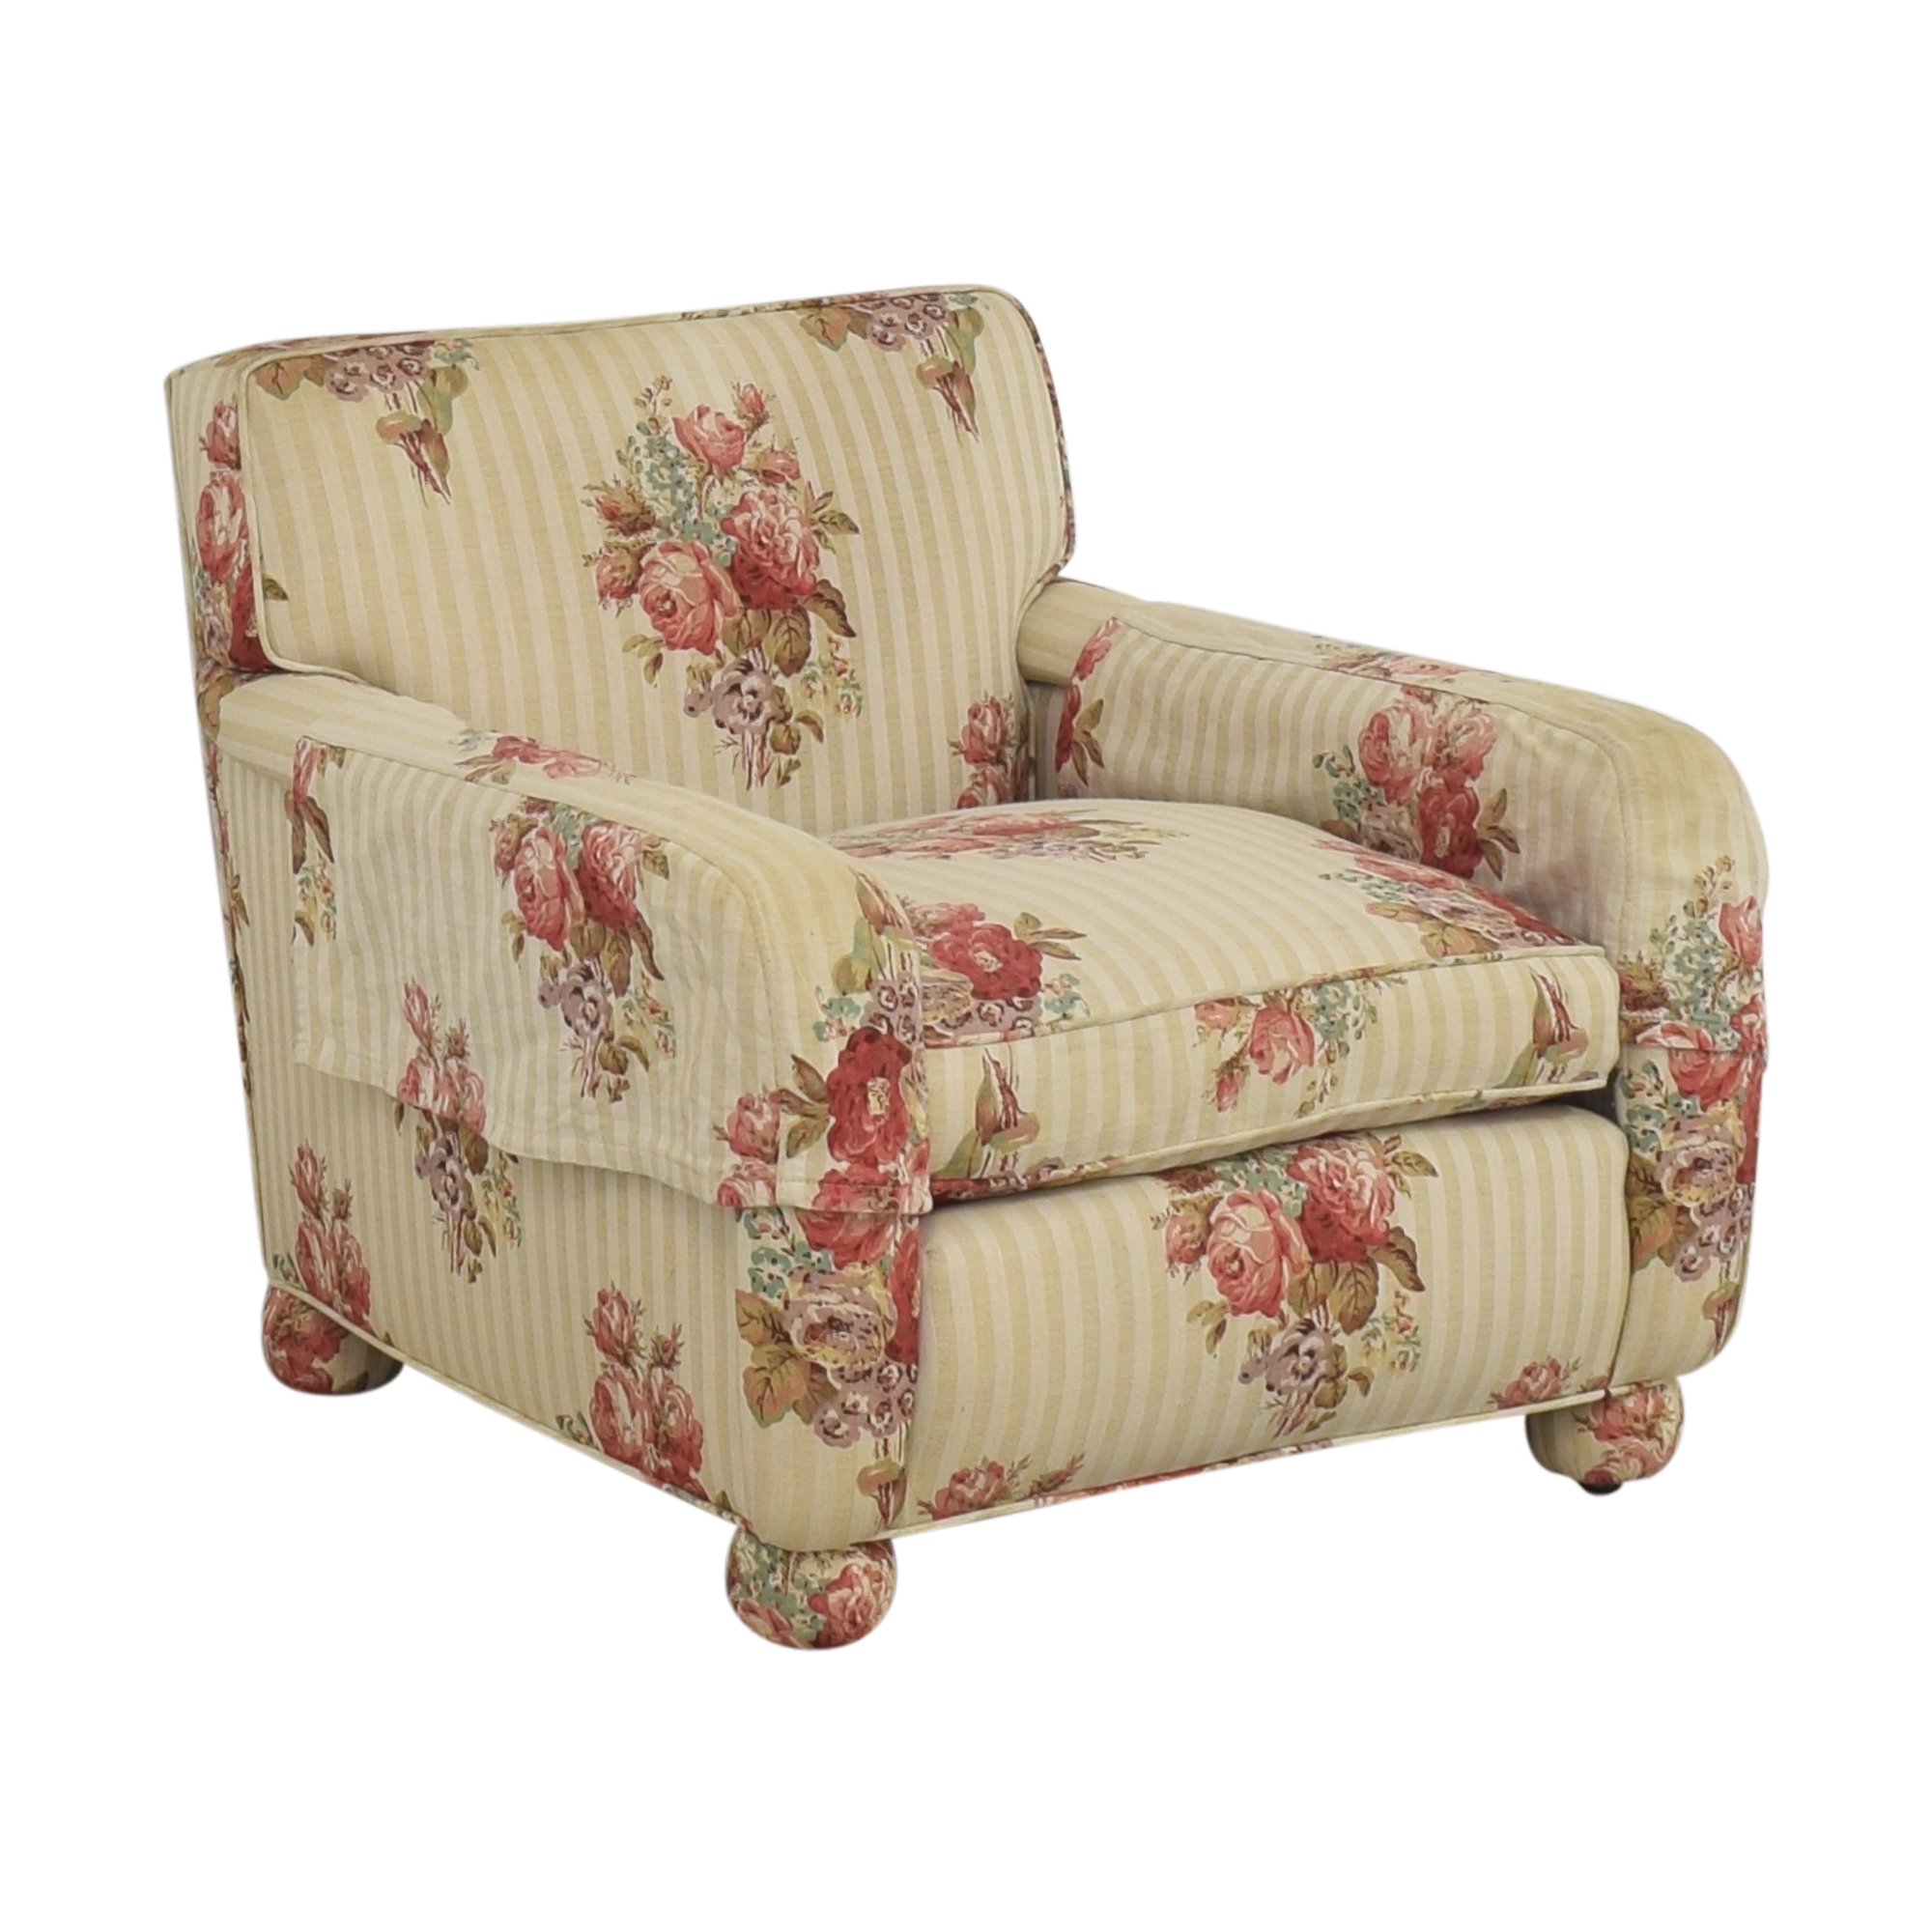 Hickory Chair Hickory Chair Upholstered Club Chair coupon